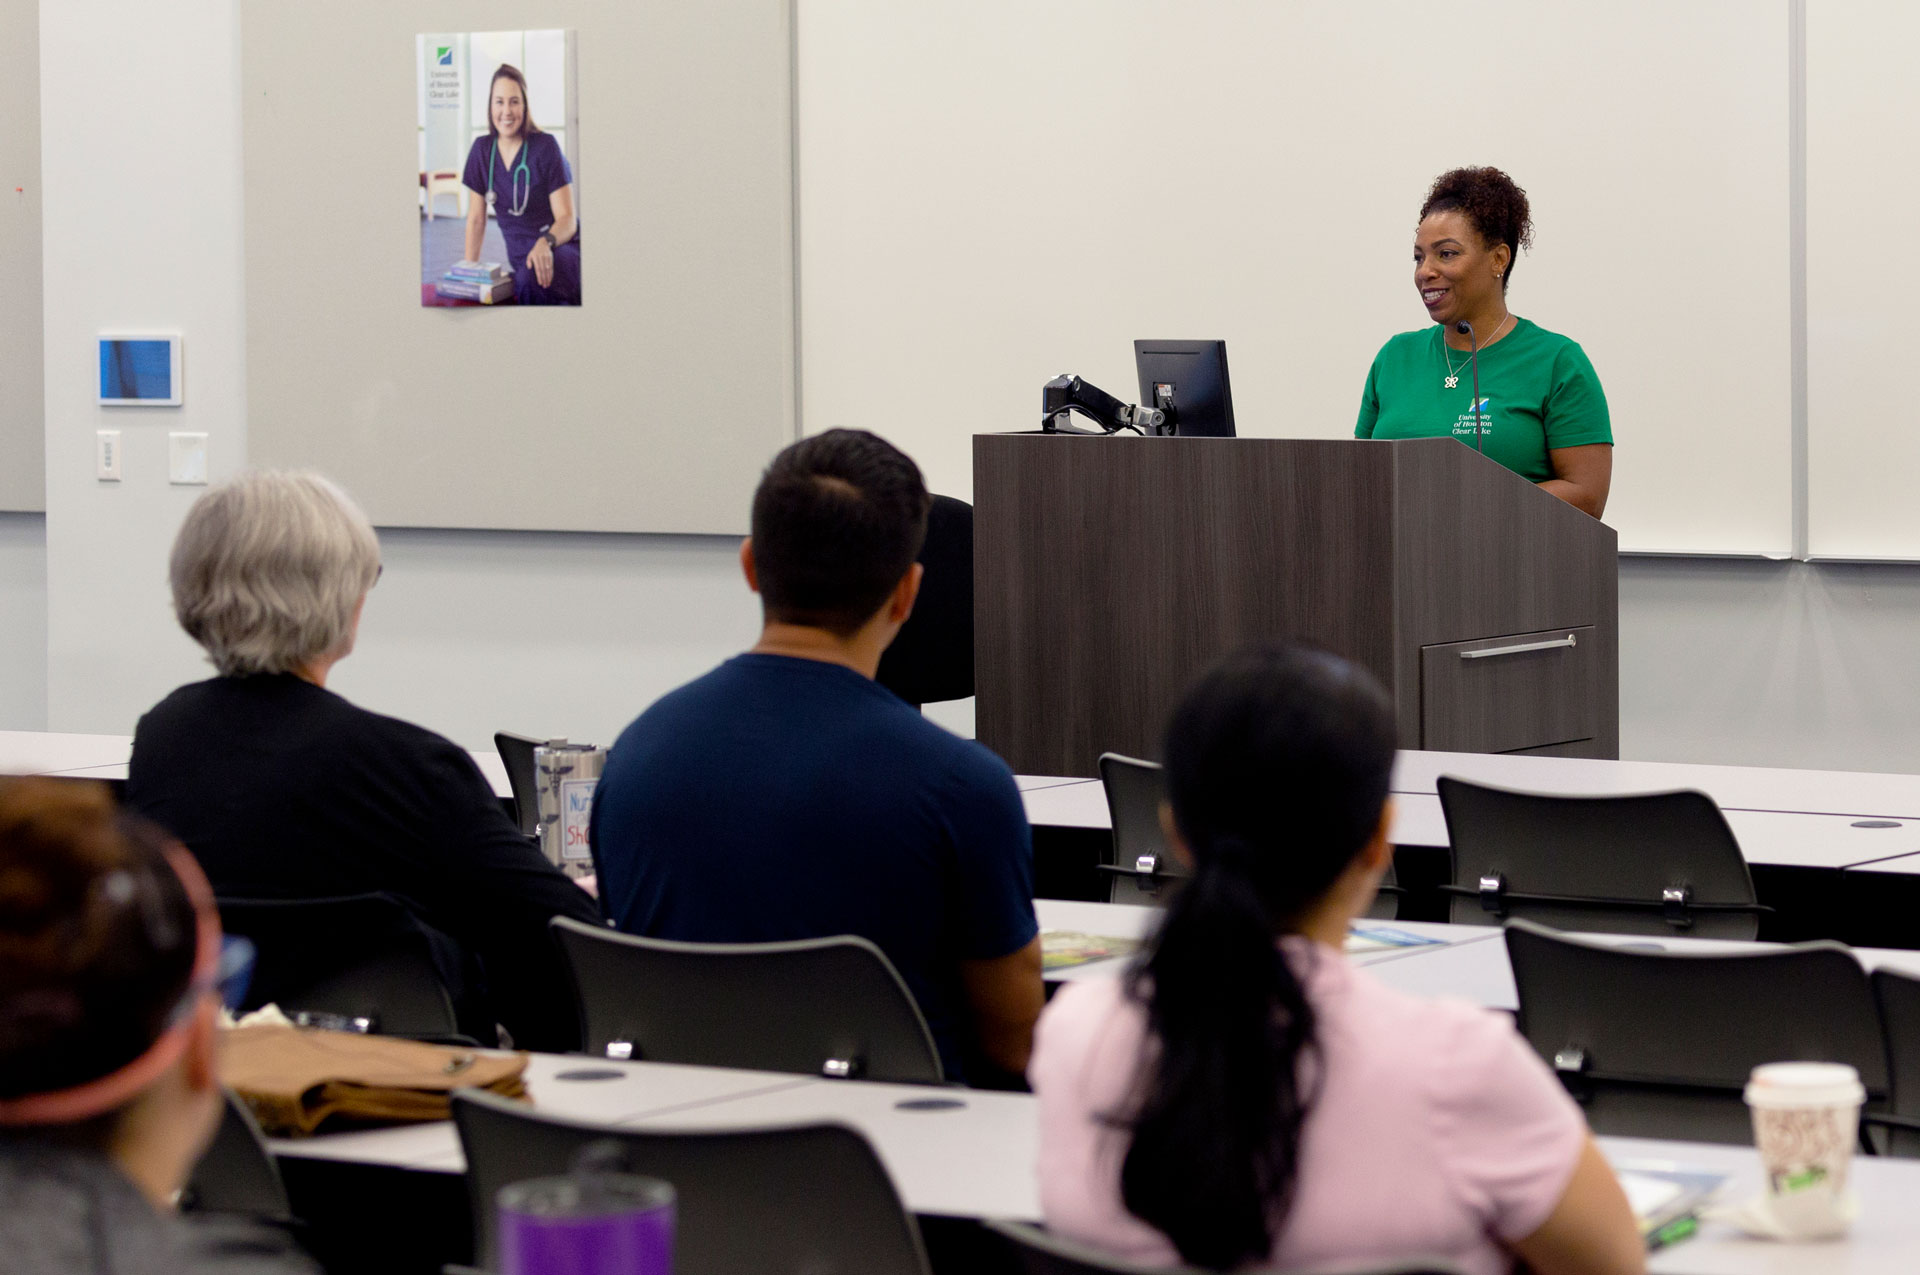 UHCL Pearland Campus hosts Nursing Education Conference